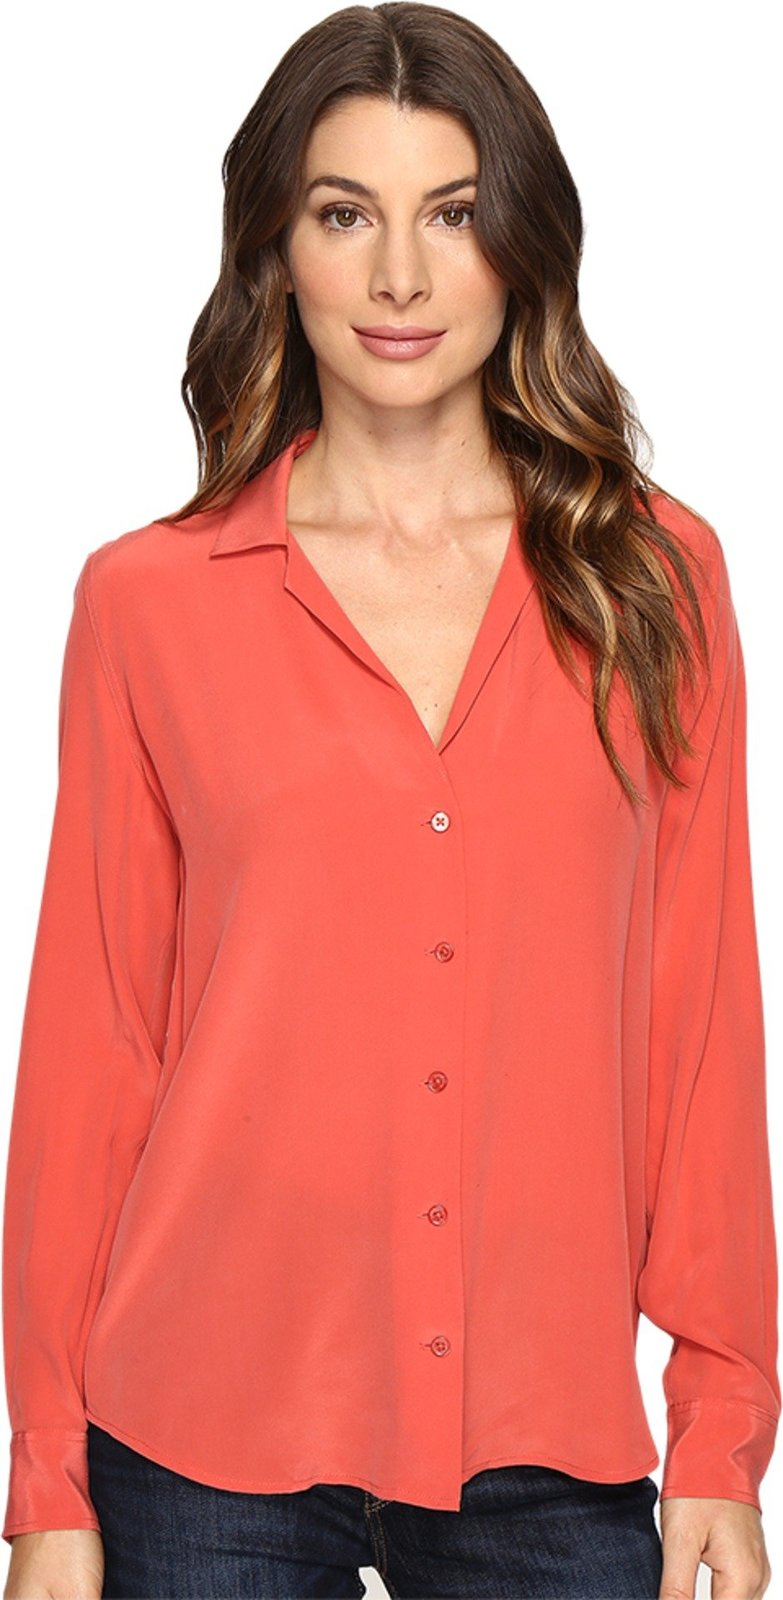 EQUIPMENT Women's Adalyn V-Neck Button Up Solid Cranberry Blouse